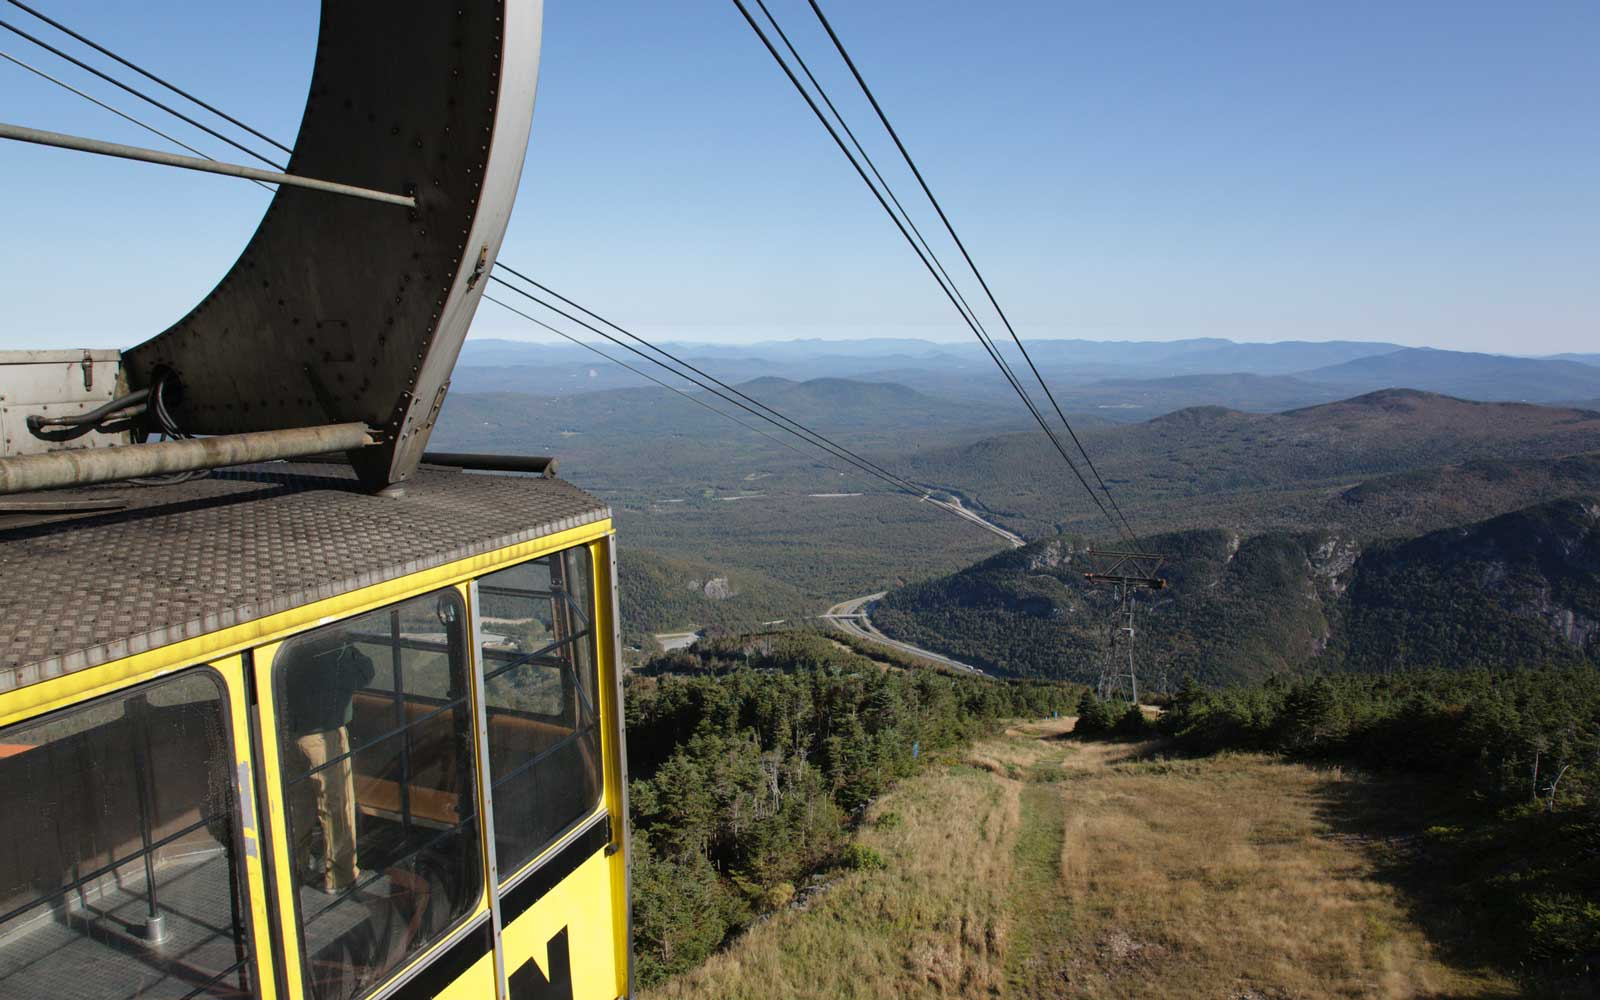 Aerial Tramway at the summit of Cannon Mountain in the White Mountains, Franconia Notch State Park, New Hampshire